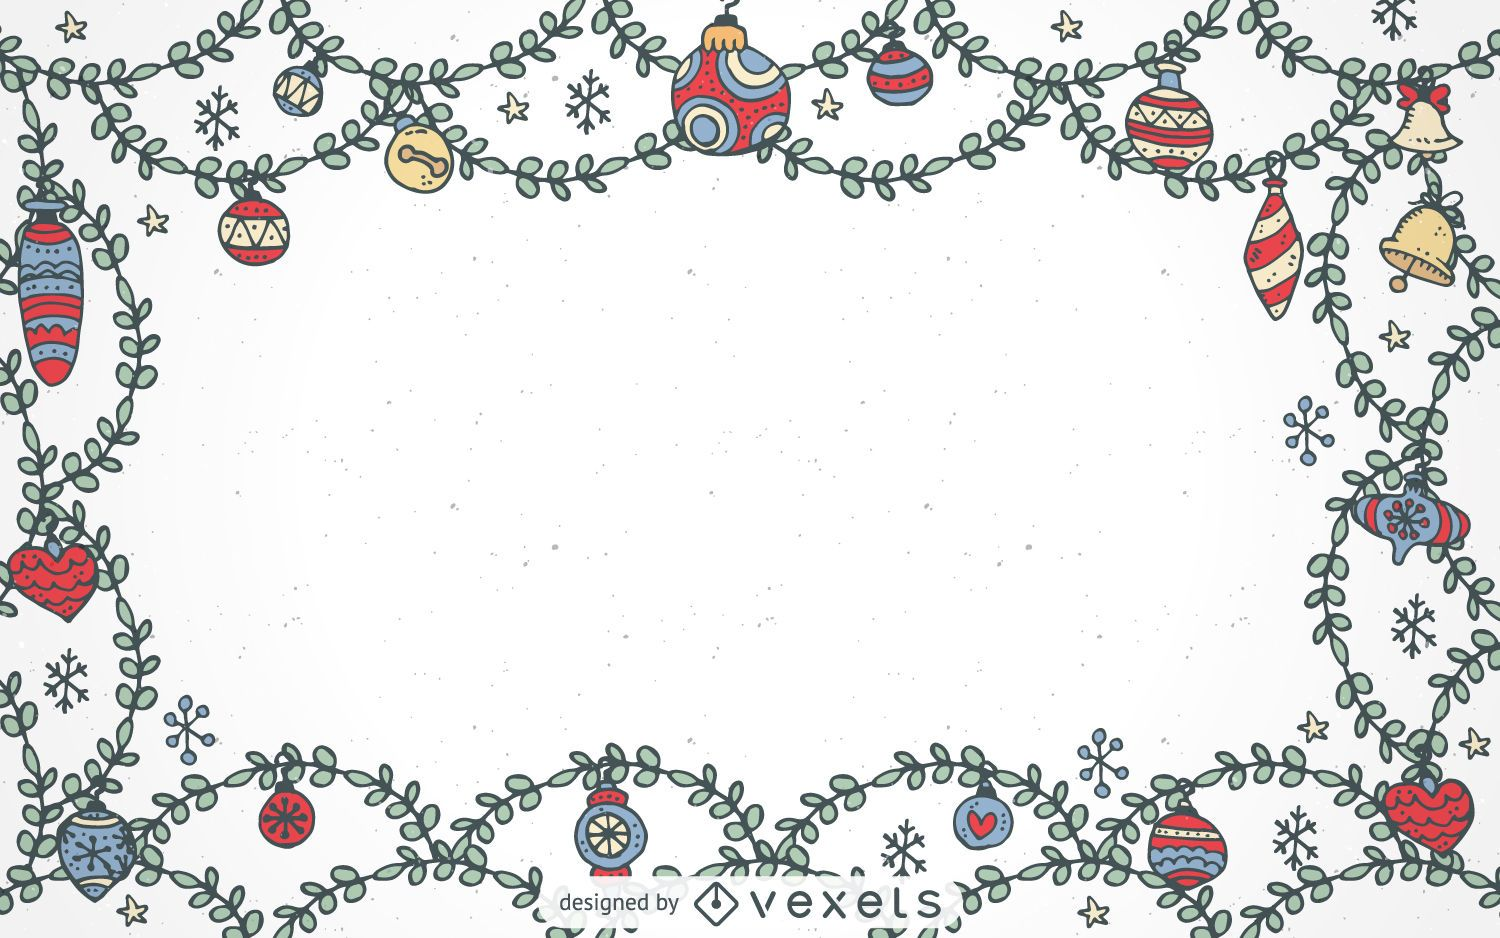 Picture frame christmas ornaments - Hand Drawn Christmas Ornaments Frame Download Large Image 1600x1000px